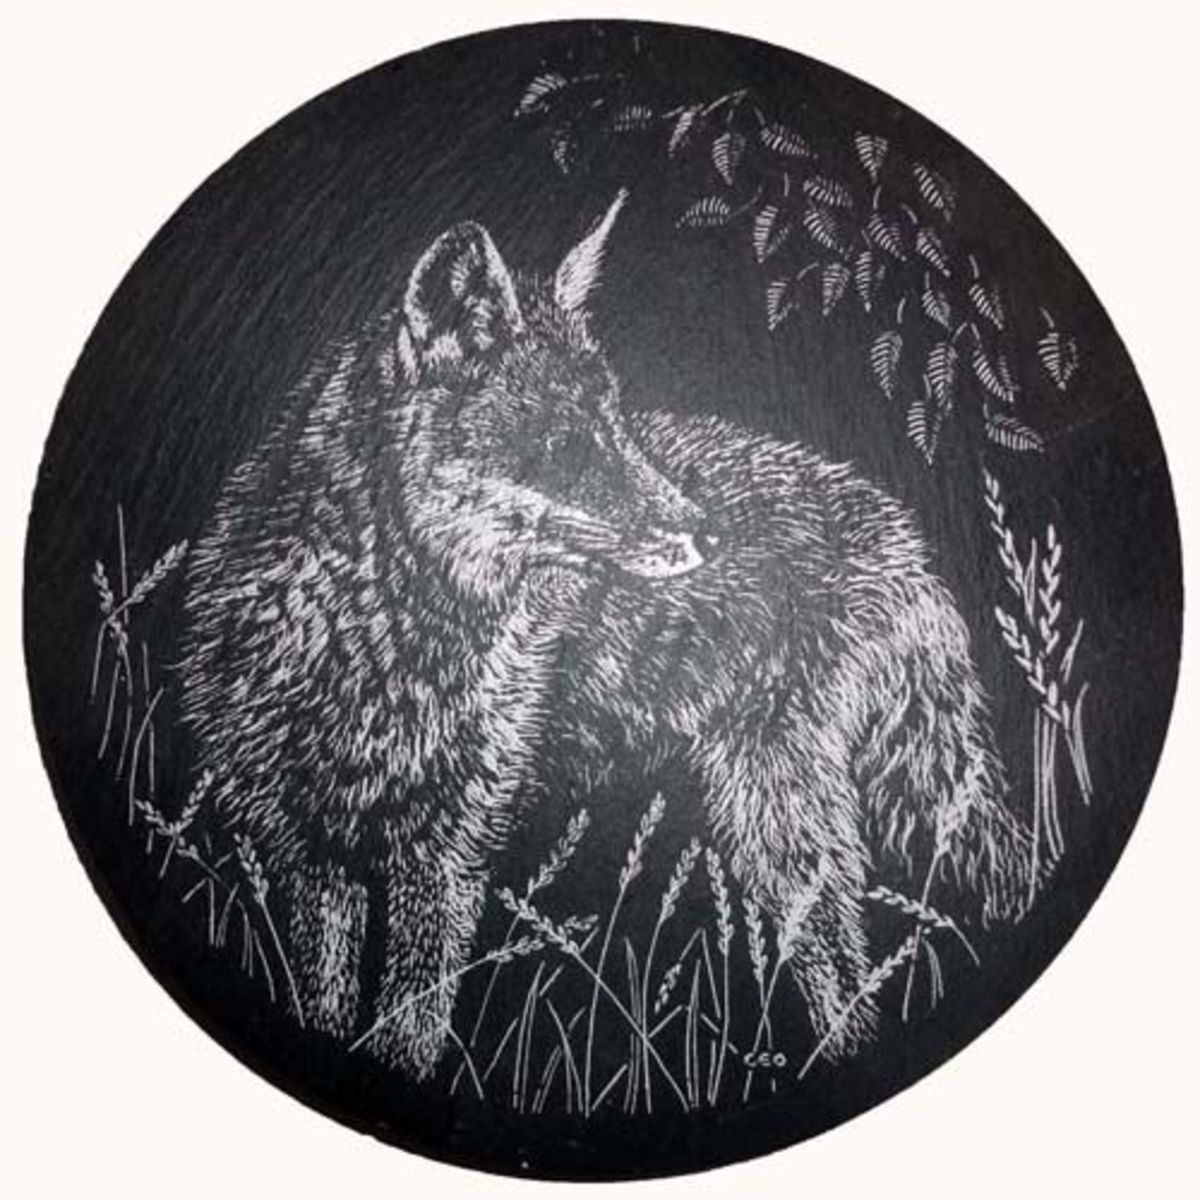 Teapot stand slate depicting British rural fox.